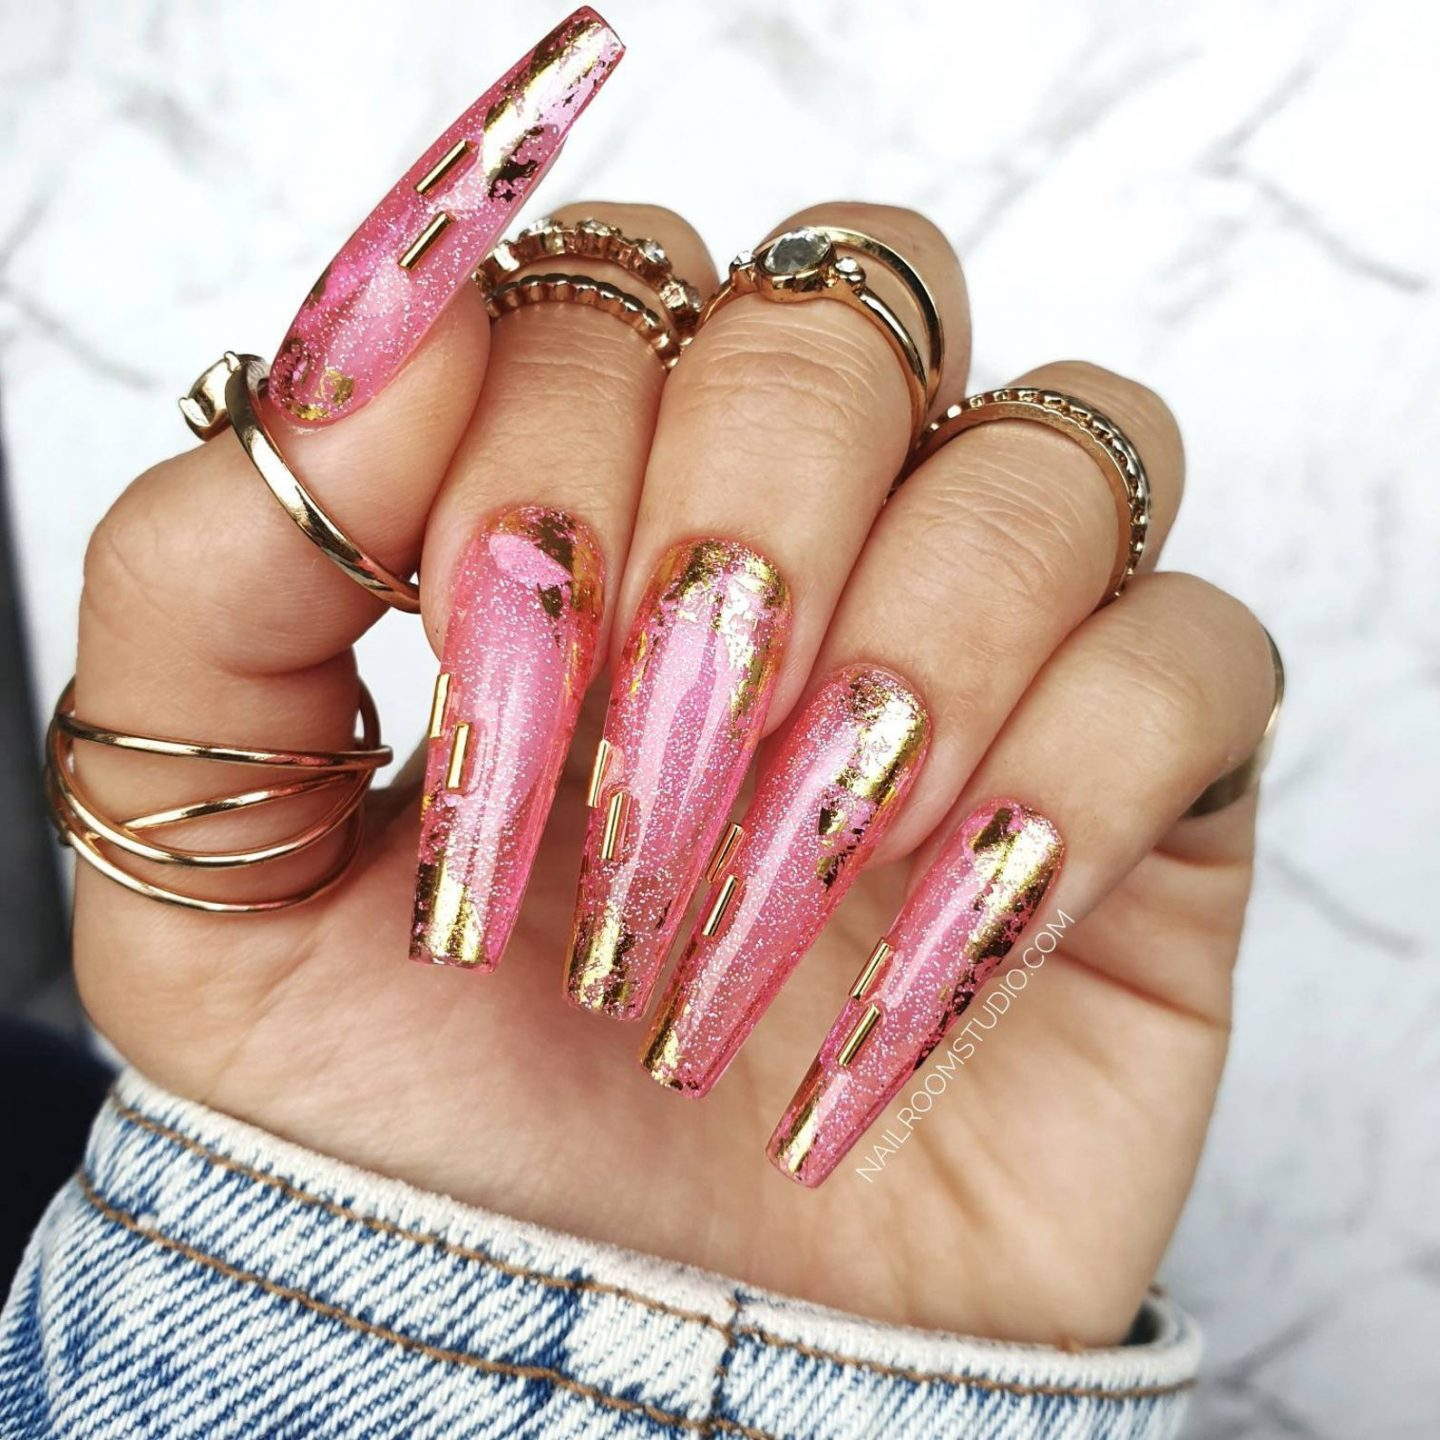 Long pink coffin nails with jelly effect and gold foil